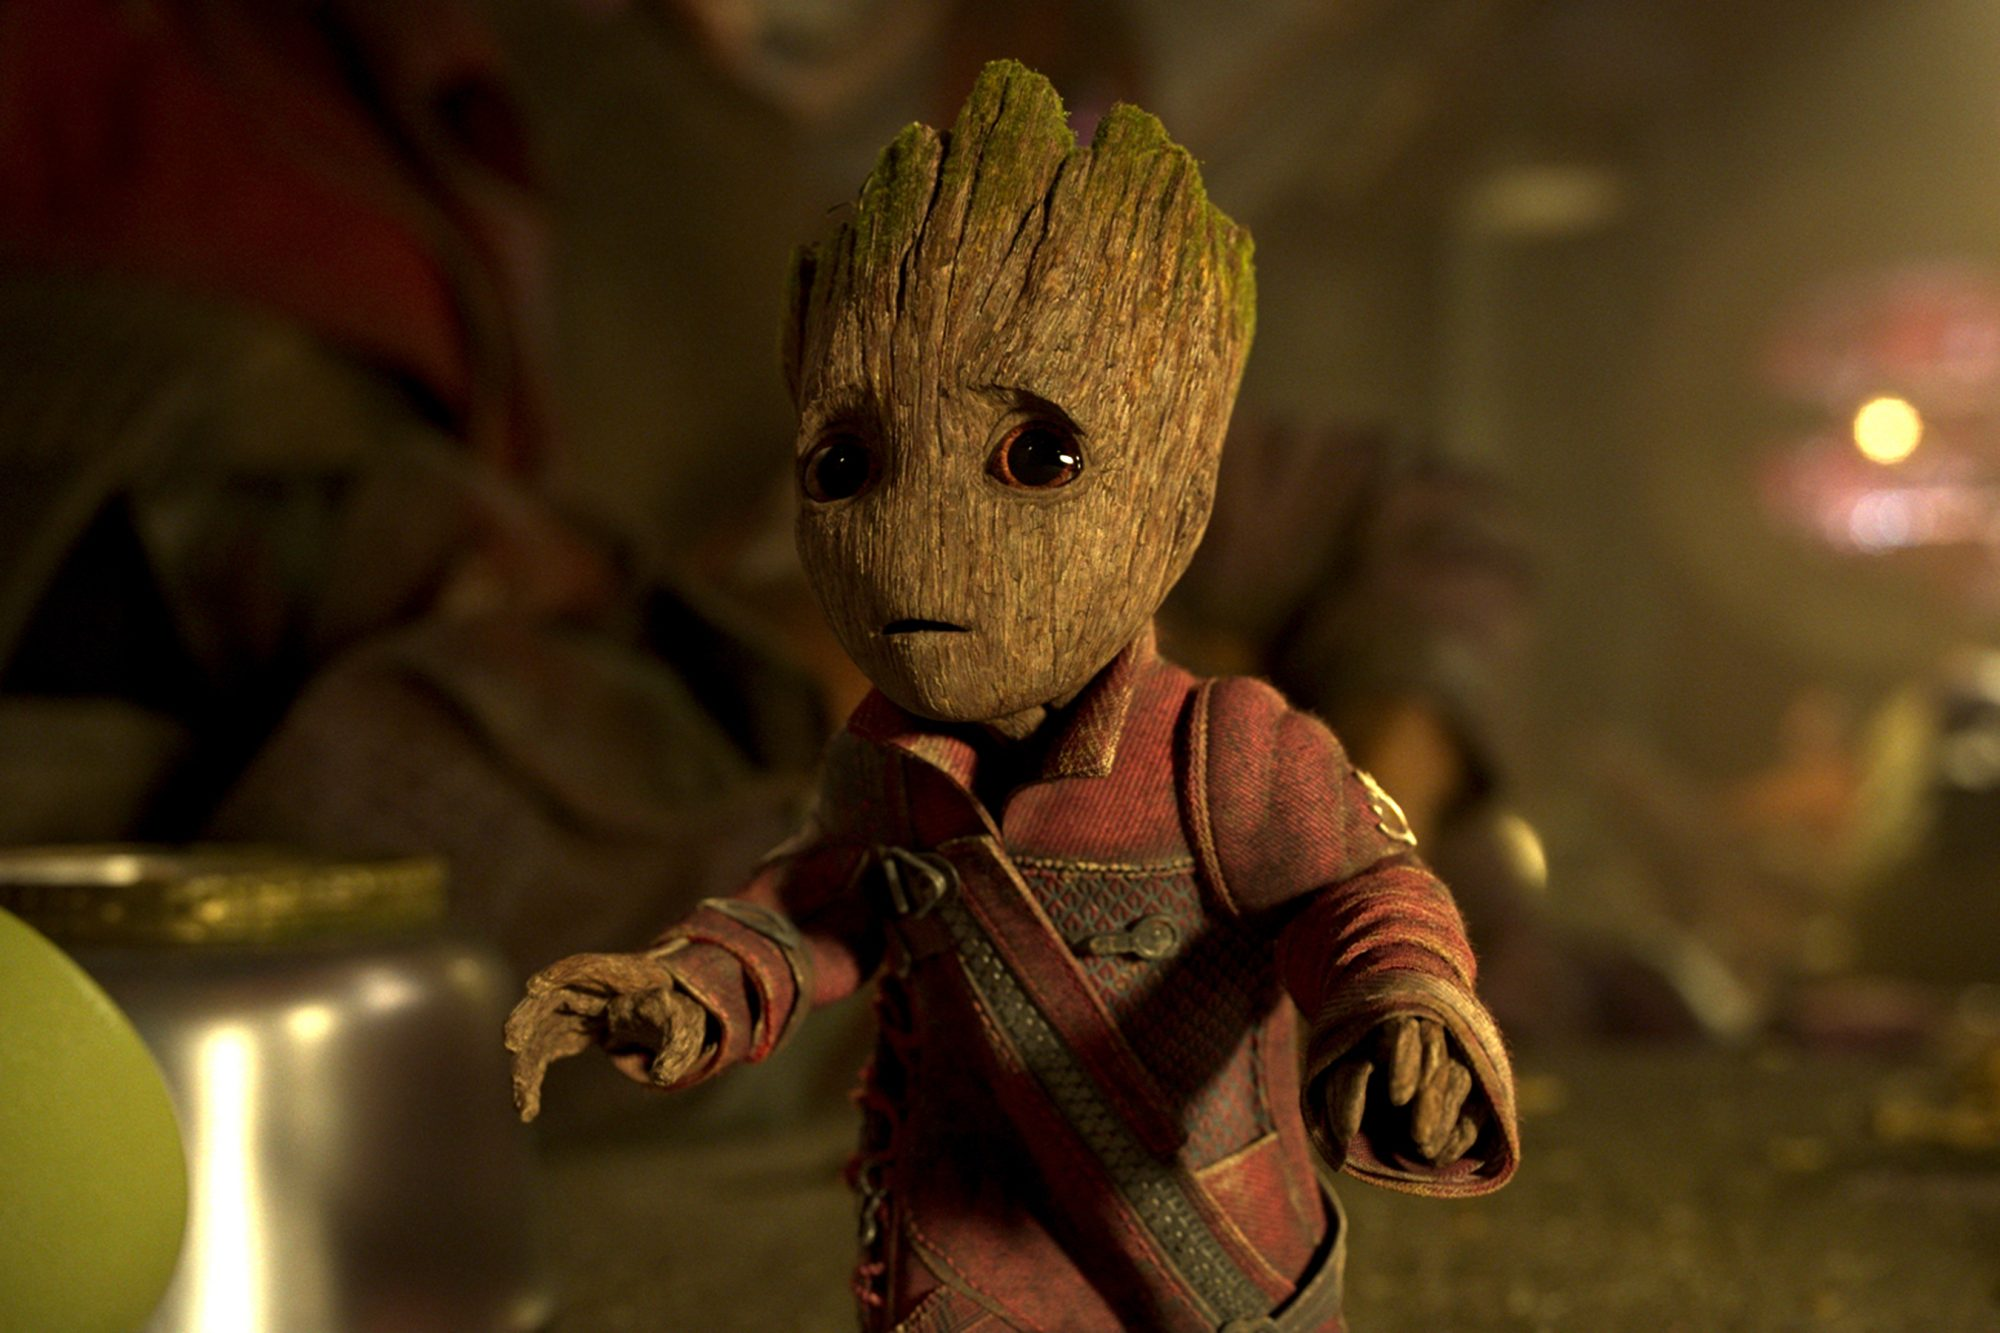 Baby Groot (Guardians Of The Galaxy Vol. 2, out now)